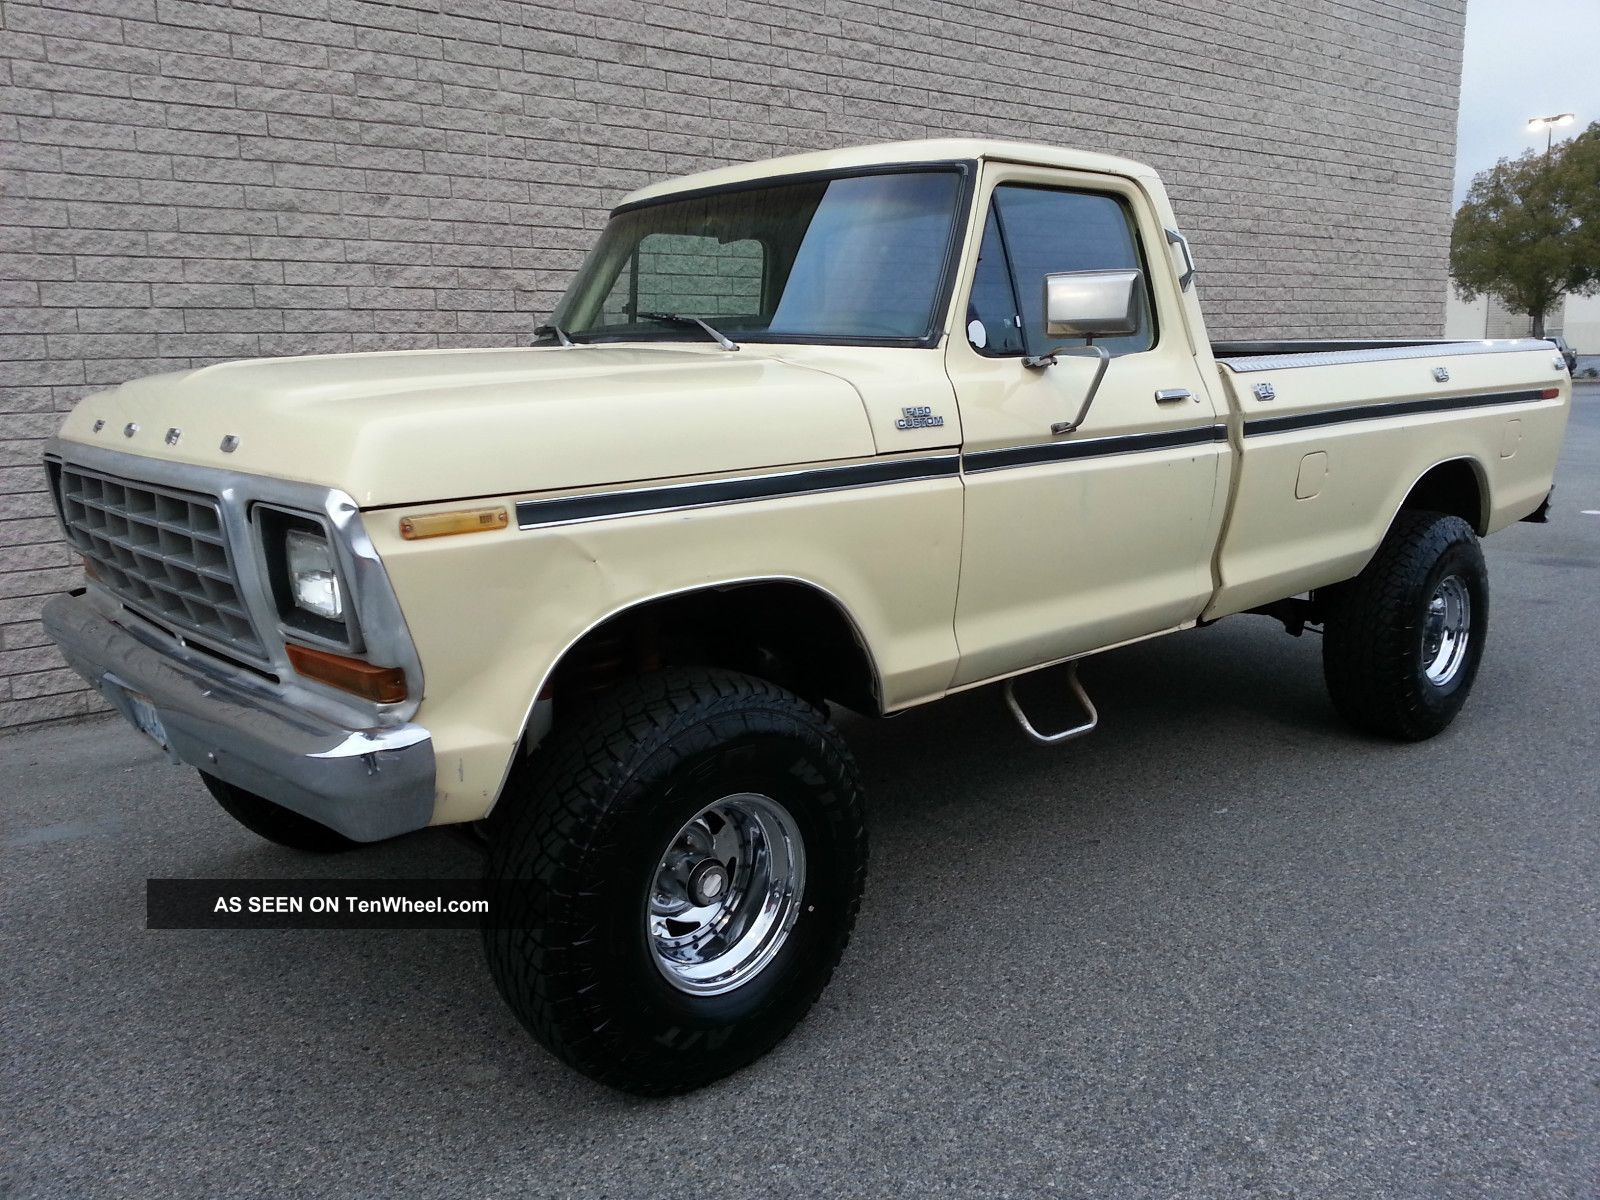 hight resolution of 1979 ford f150 4x4 custom 351 v8 rust 4 inch lift automatic 4wd 79 f 150